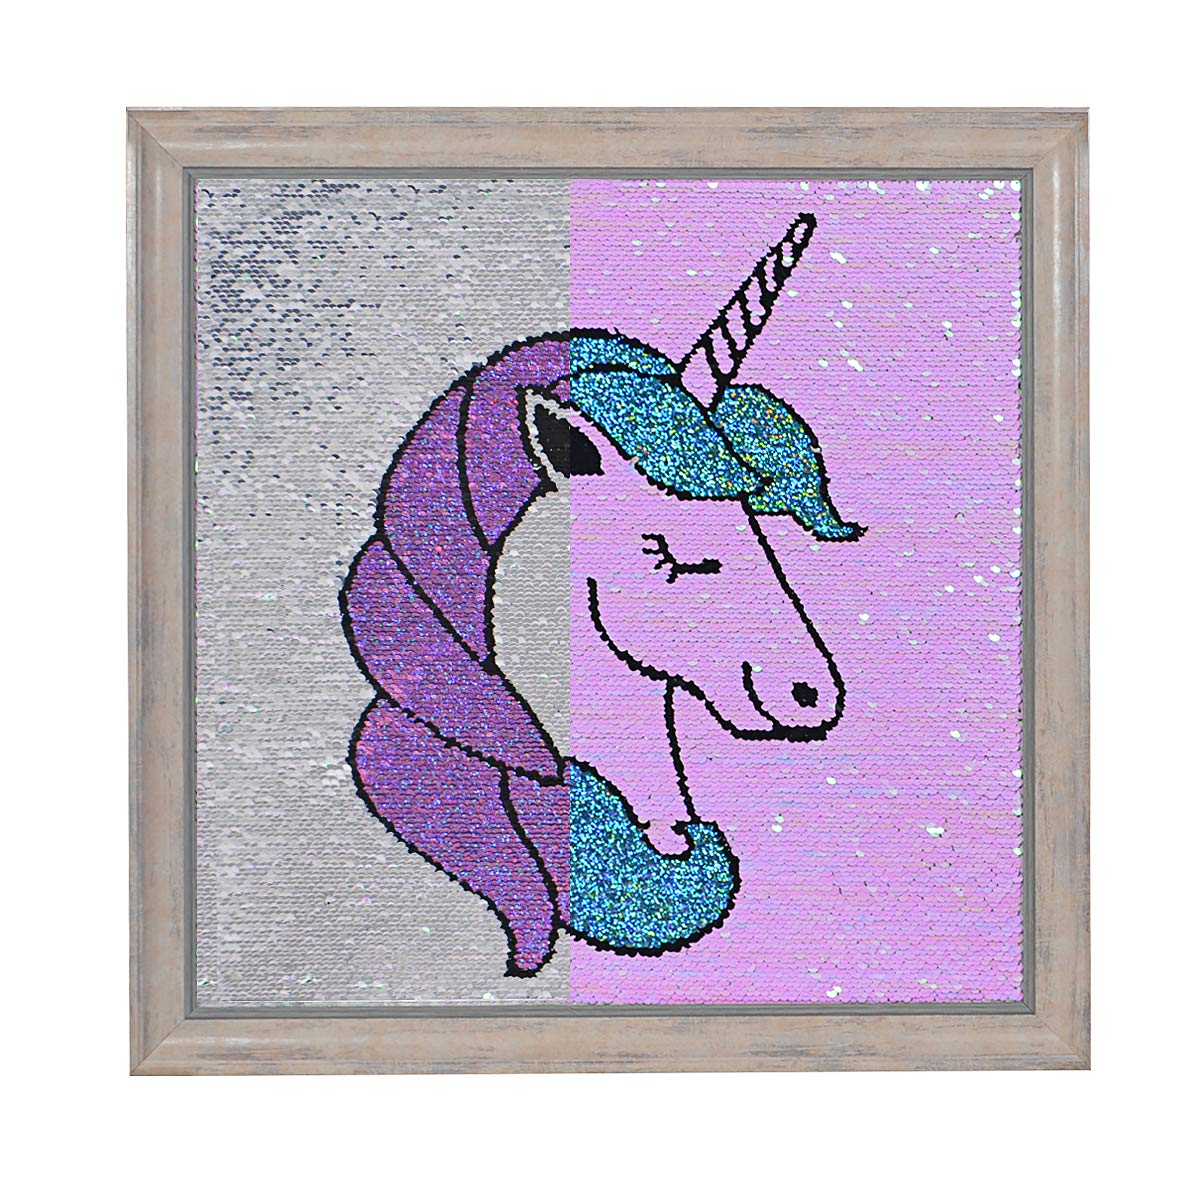 Unicorn Sequin Wall Art Reversible Wall Posters Decoration Unicorn Room Decor Gifts for Kids Nursery Bedroom (17'' × 17'') by Besutolife